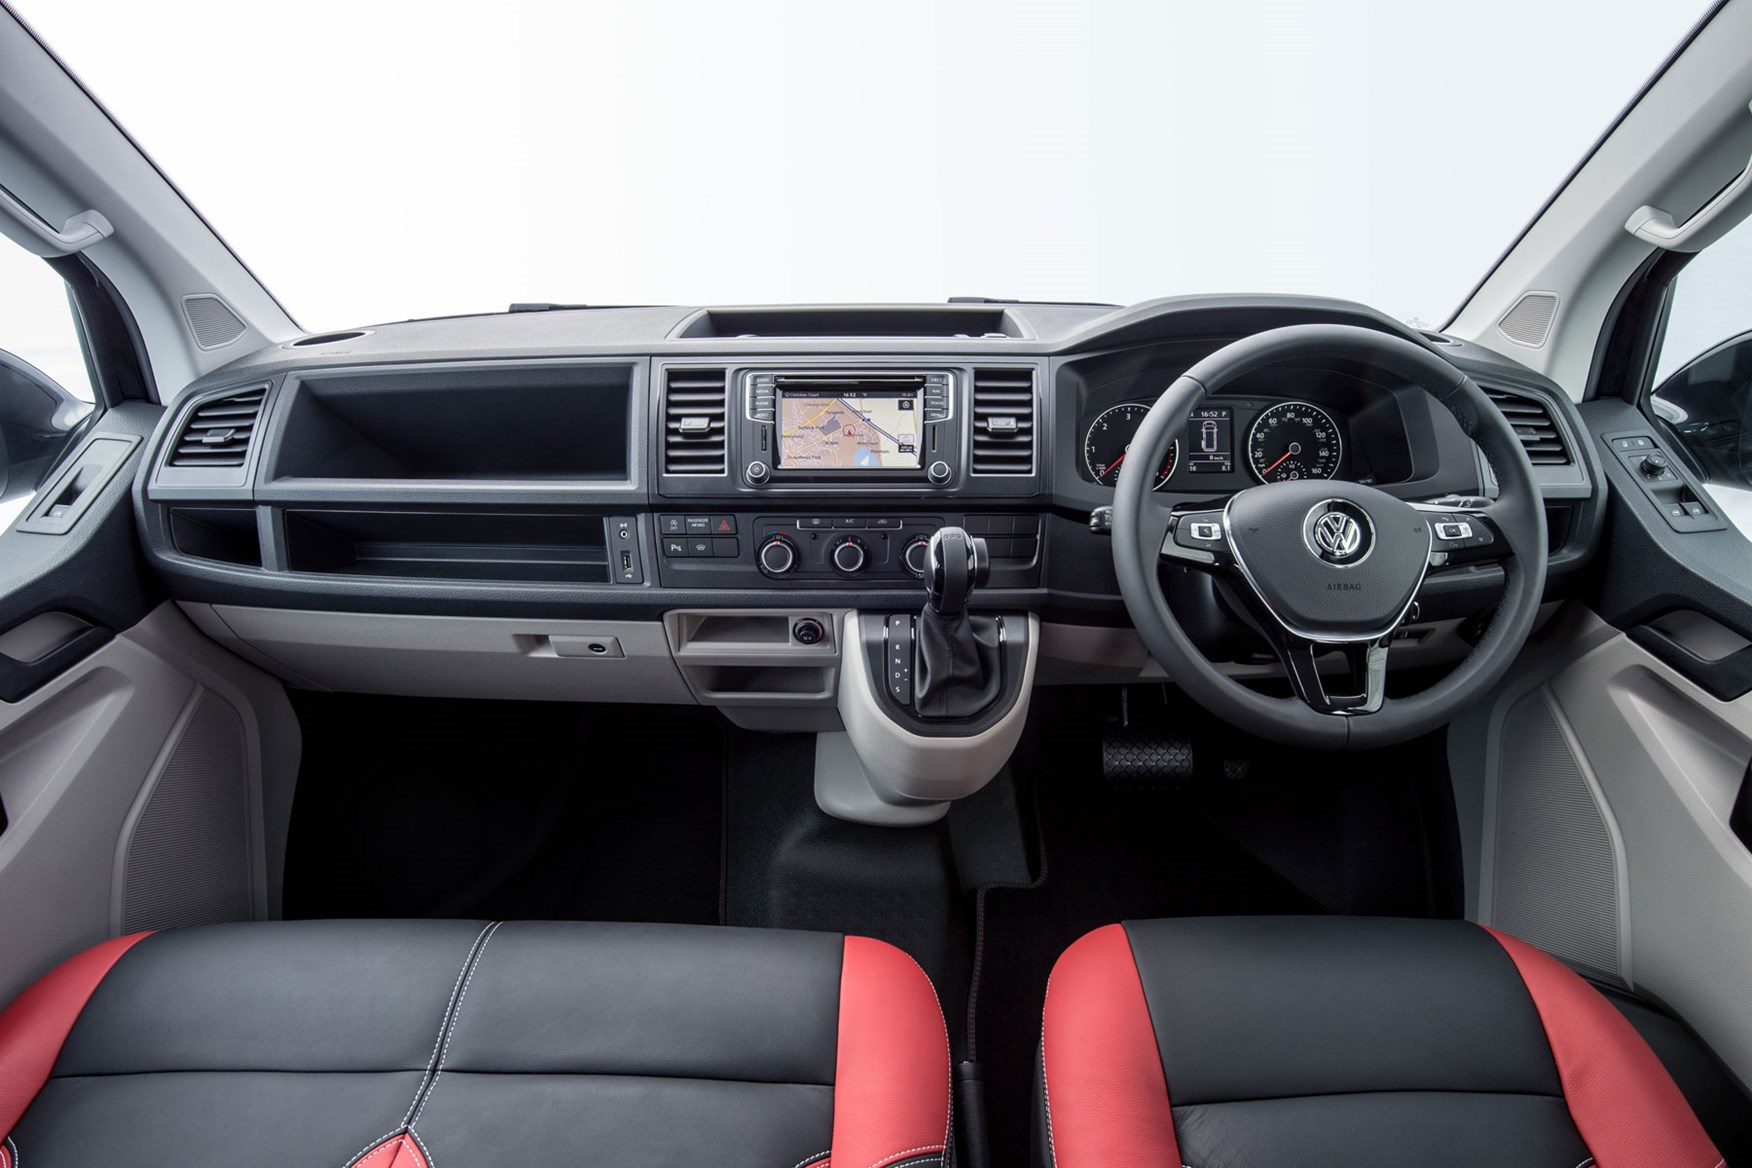 VW Transporter T6 Sportline review - dashboard, cab interior, leather